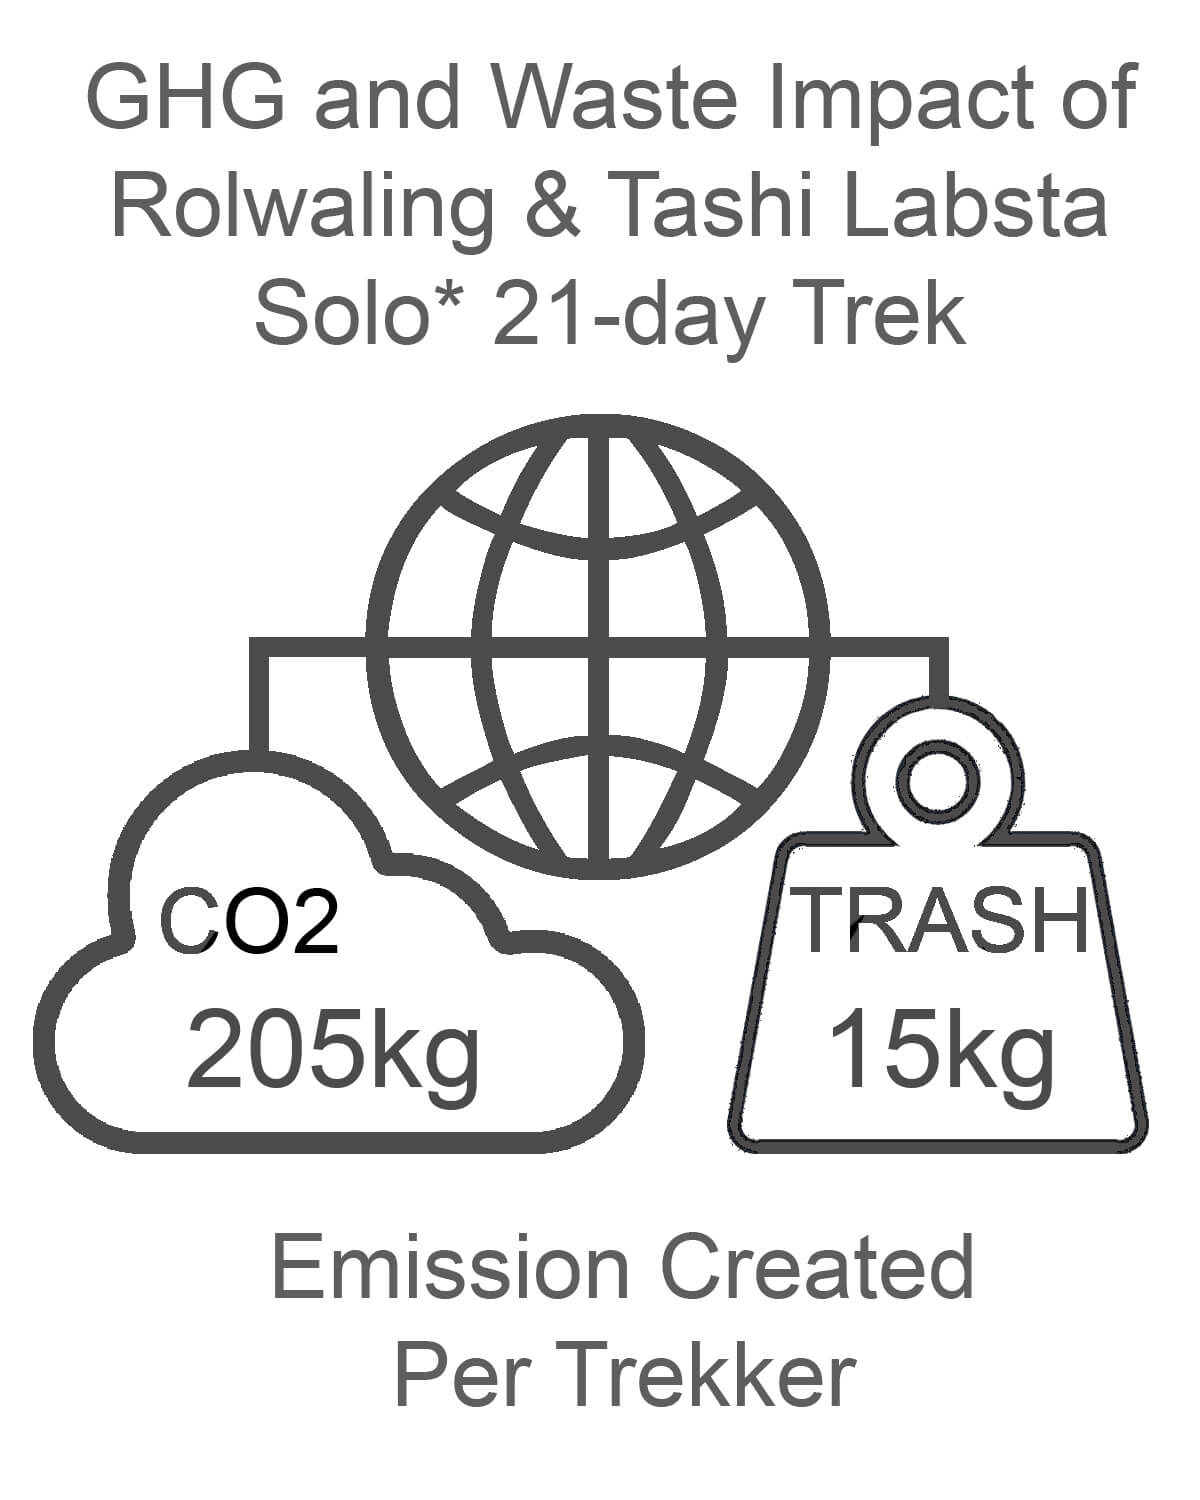 Rolwaling and Tashi Labsta GHG and Waste Impact SOLO